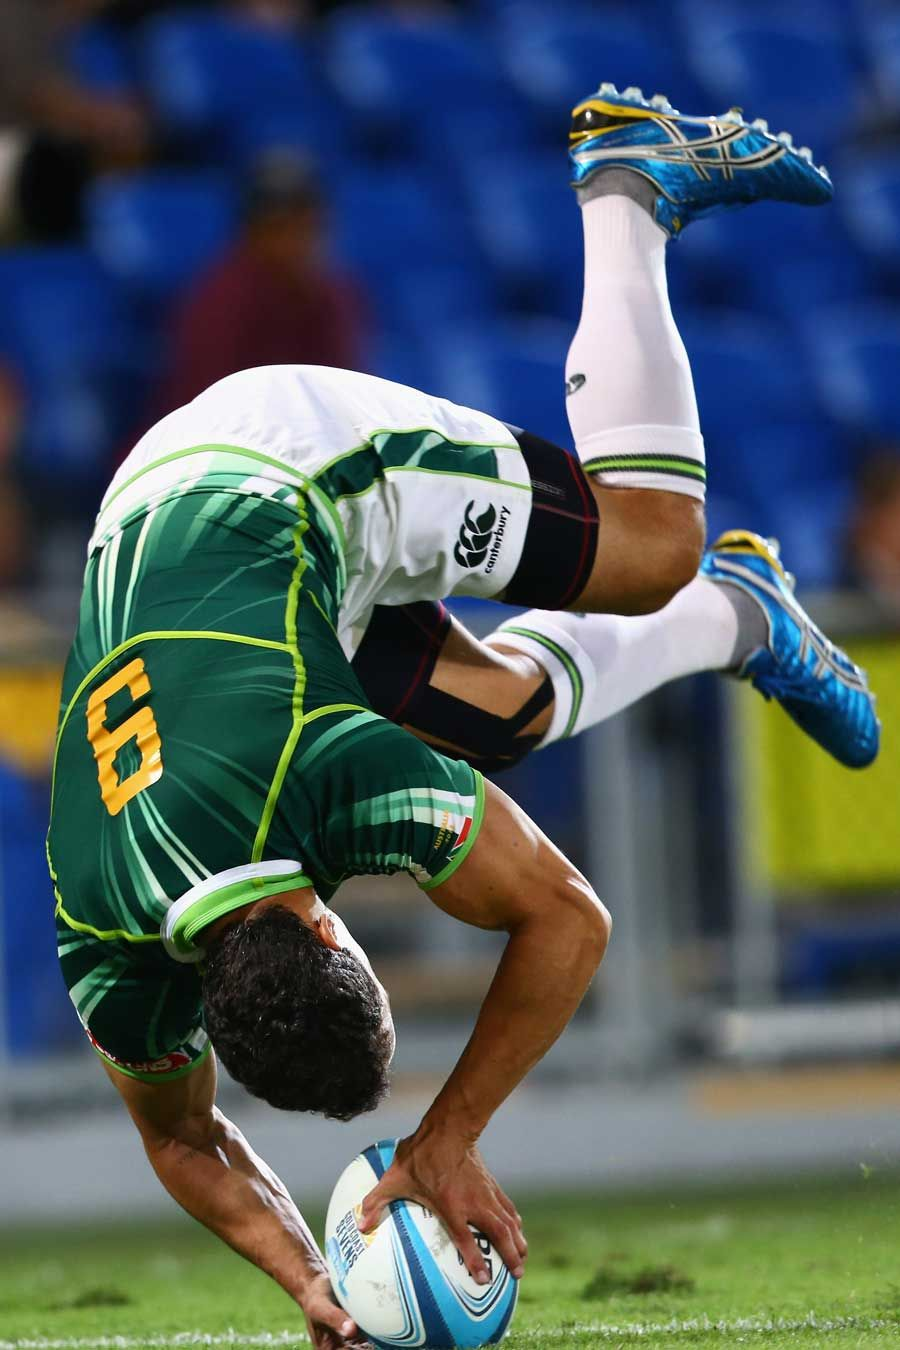 South Africa's Paul Delport goes airborne to score against